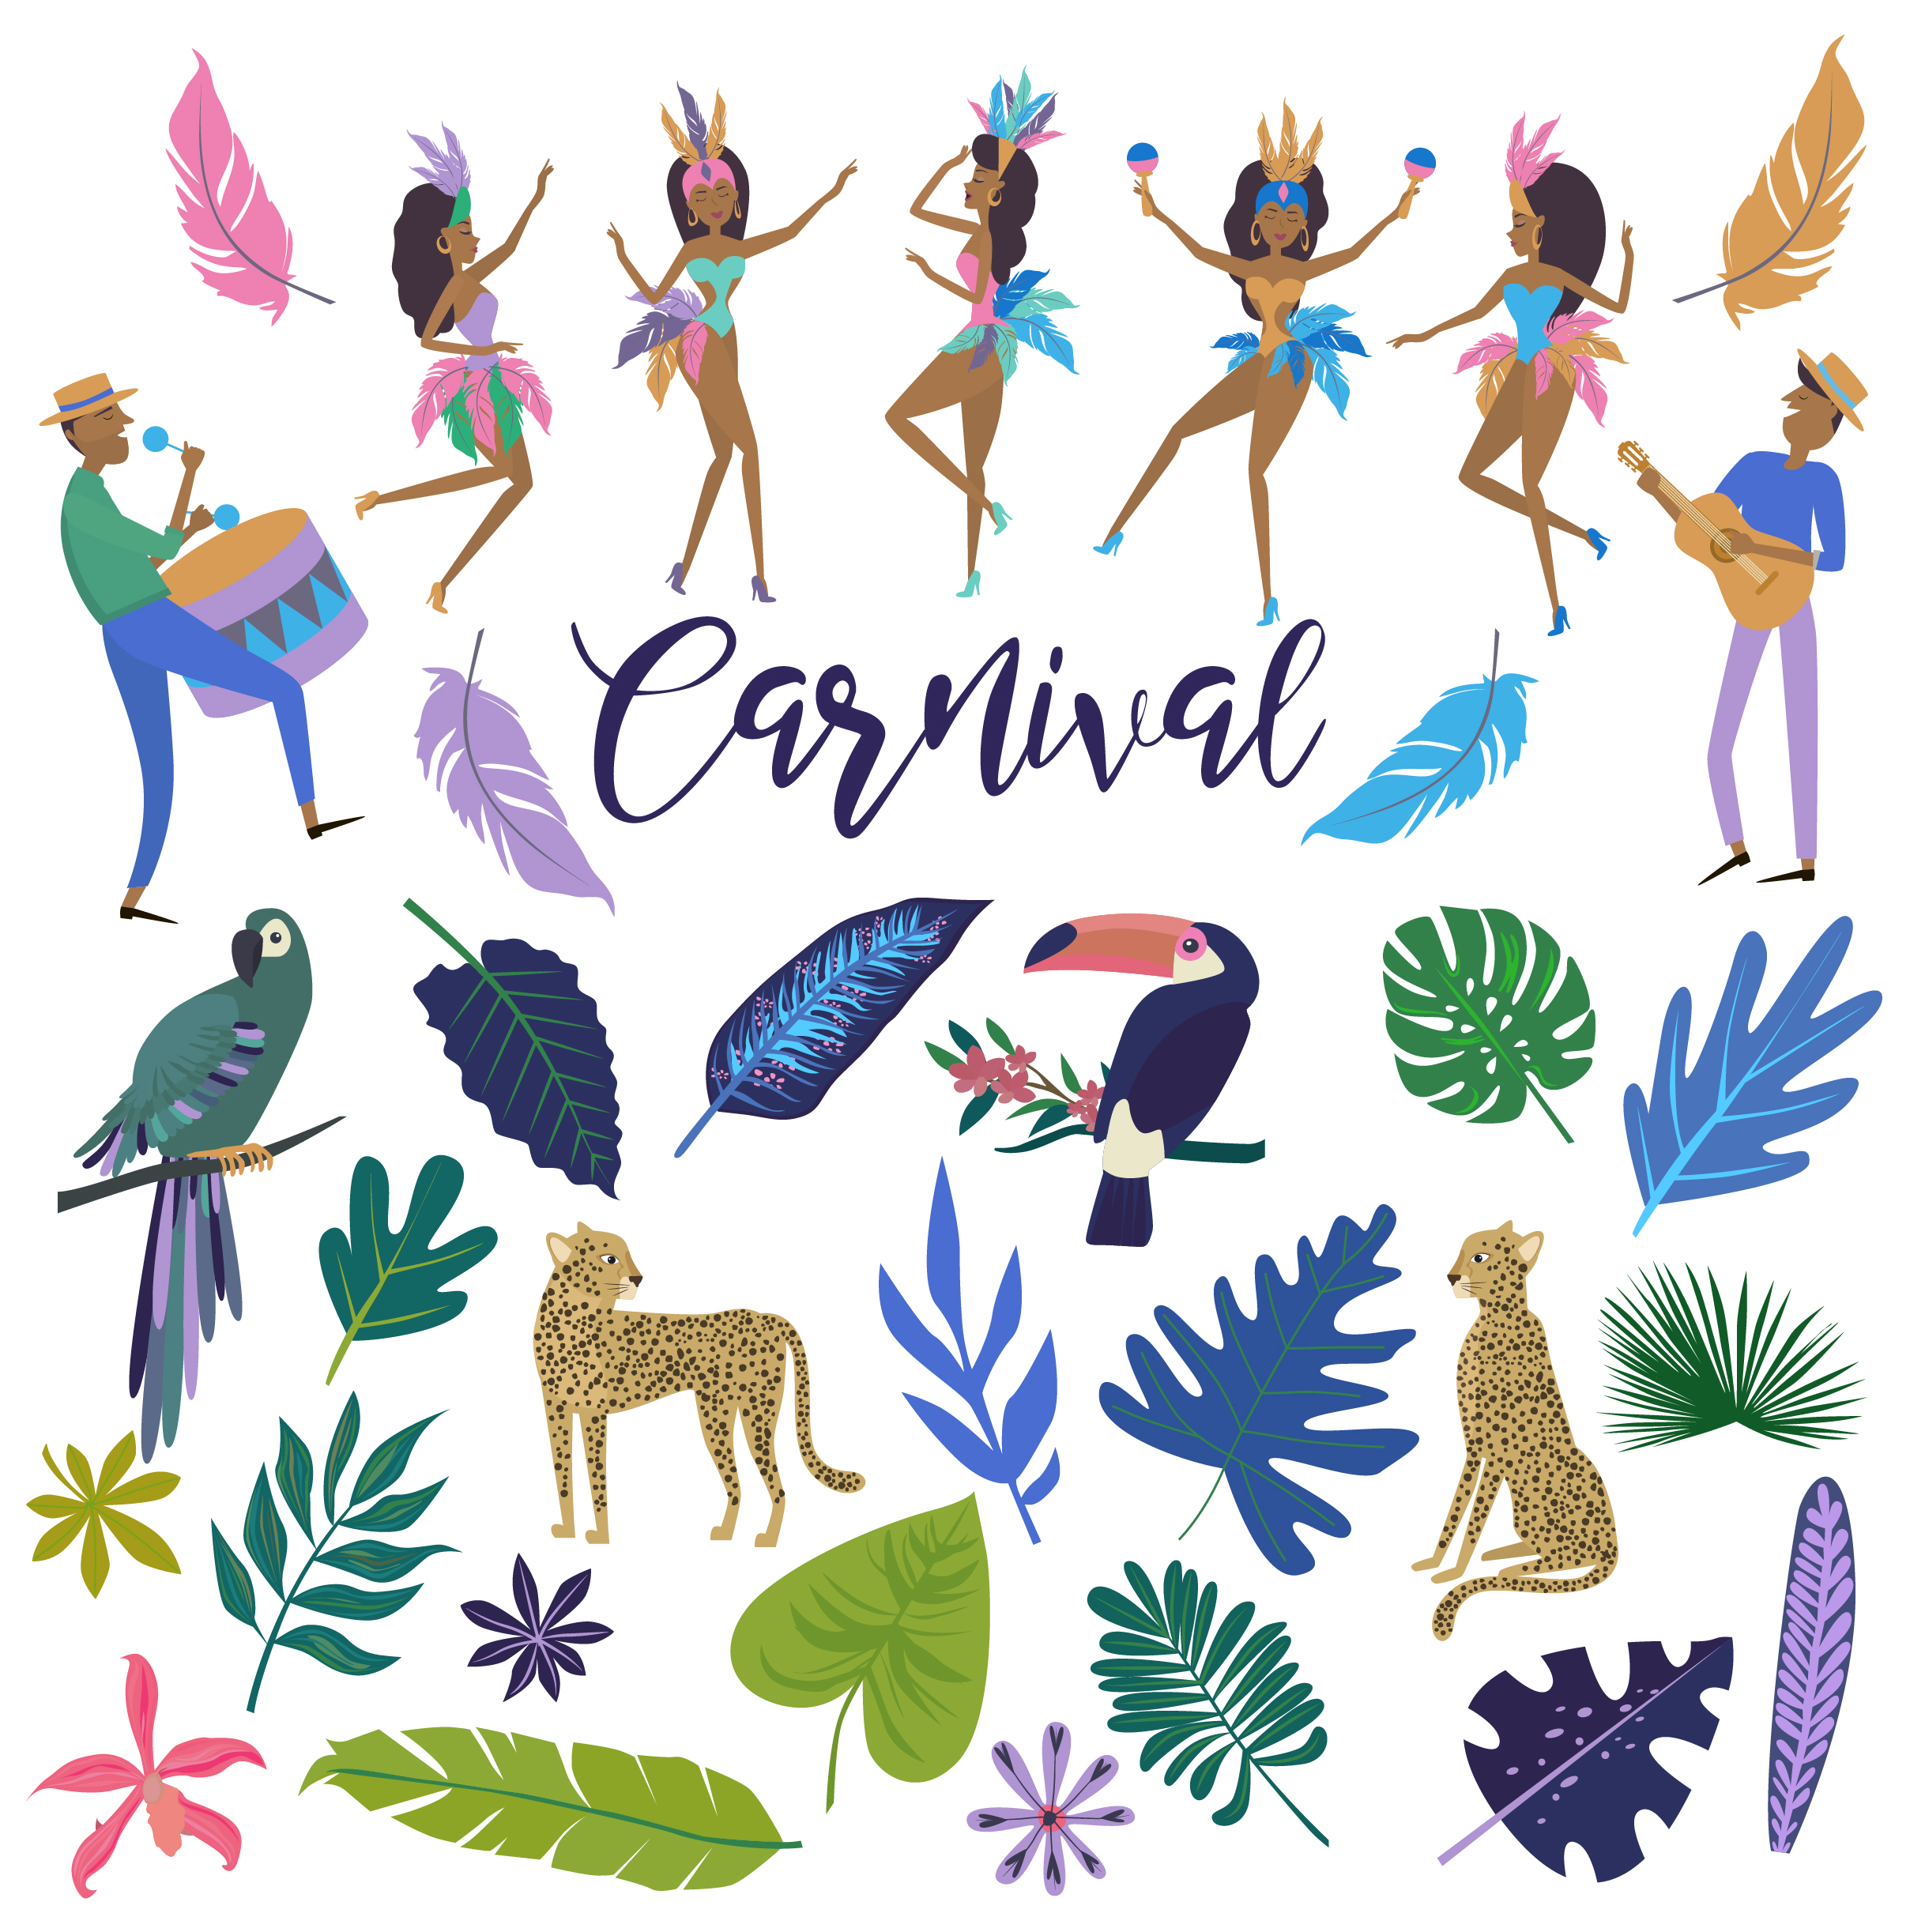 Hey, Carnival example image 2